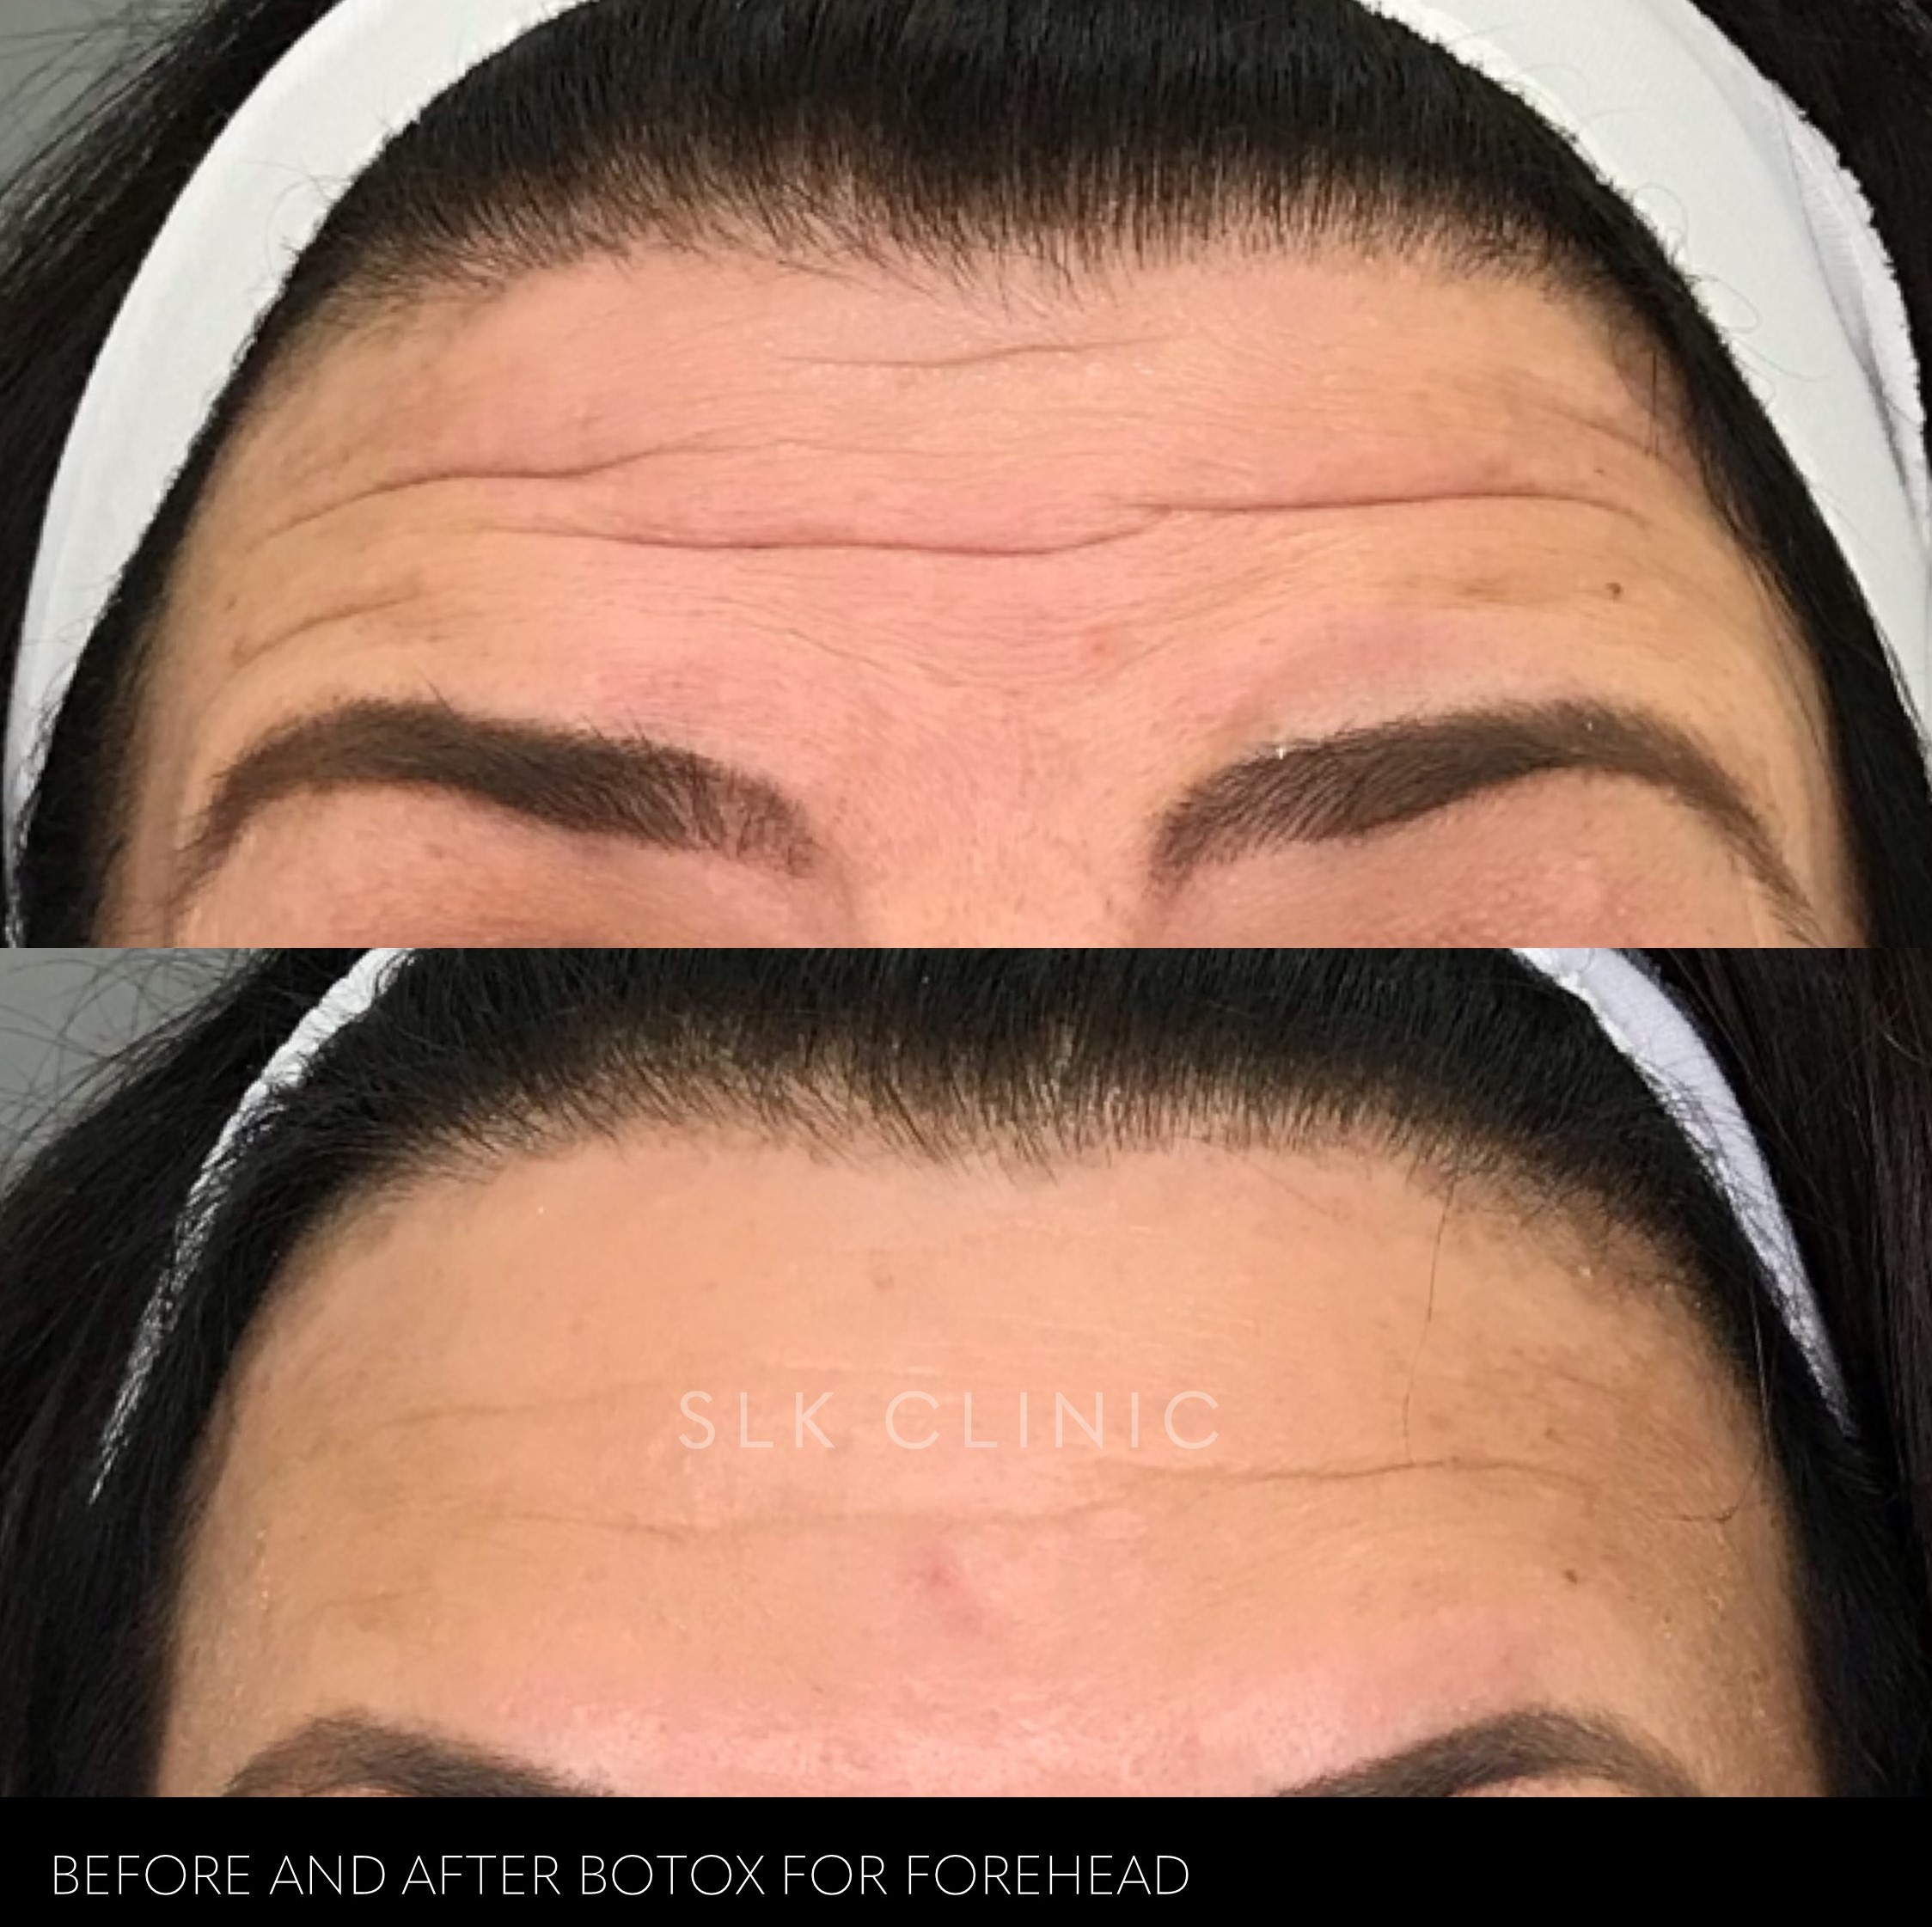 a woman with beautiful skin that seems to have juvederm or skin tightening treatment